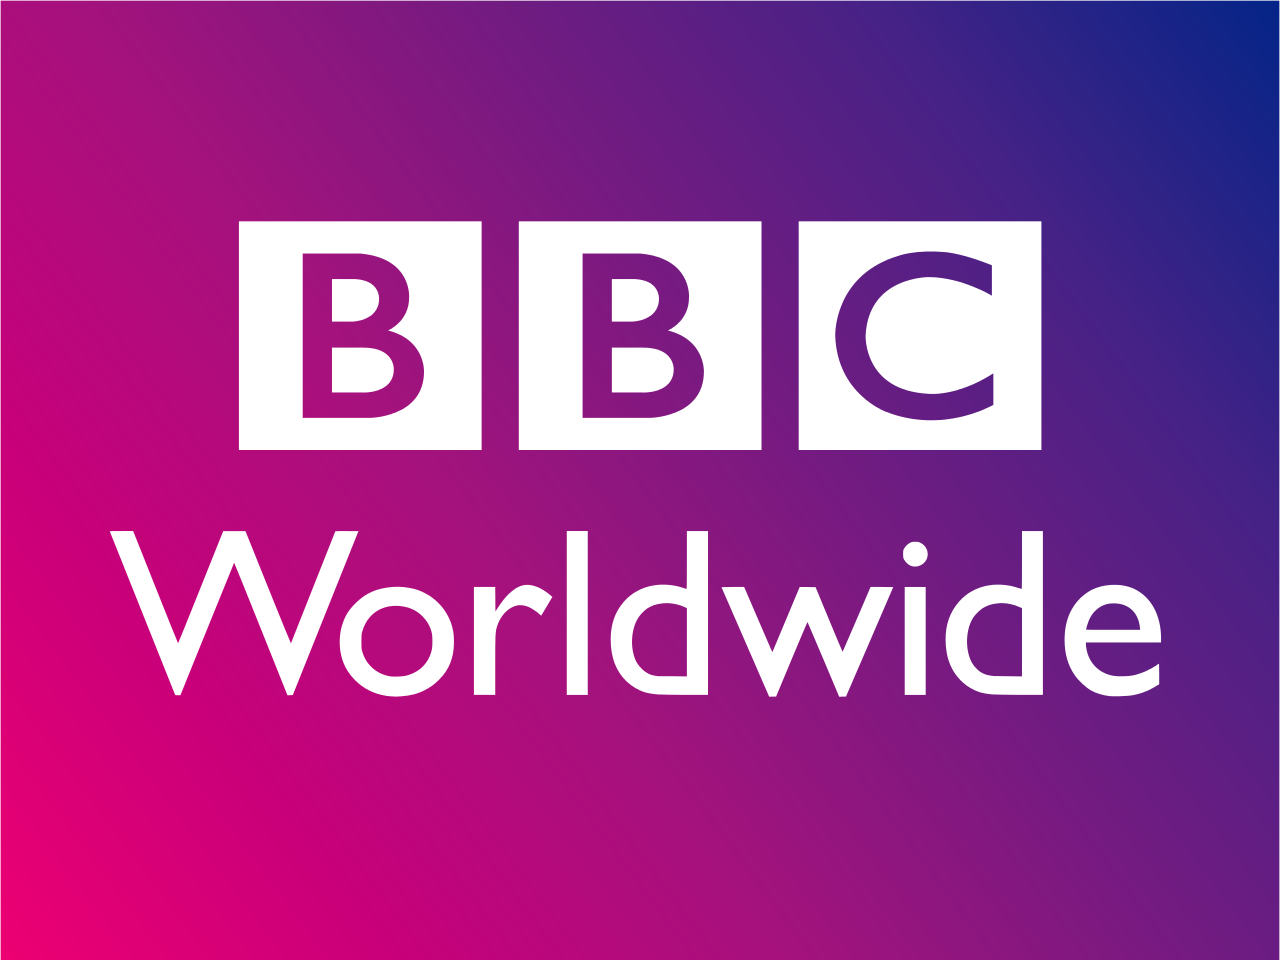 BBC_Worldwide_Logo.svg